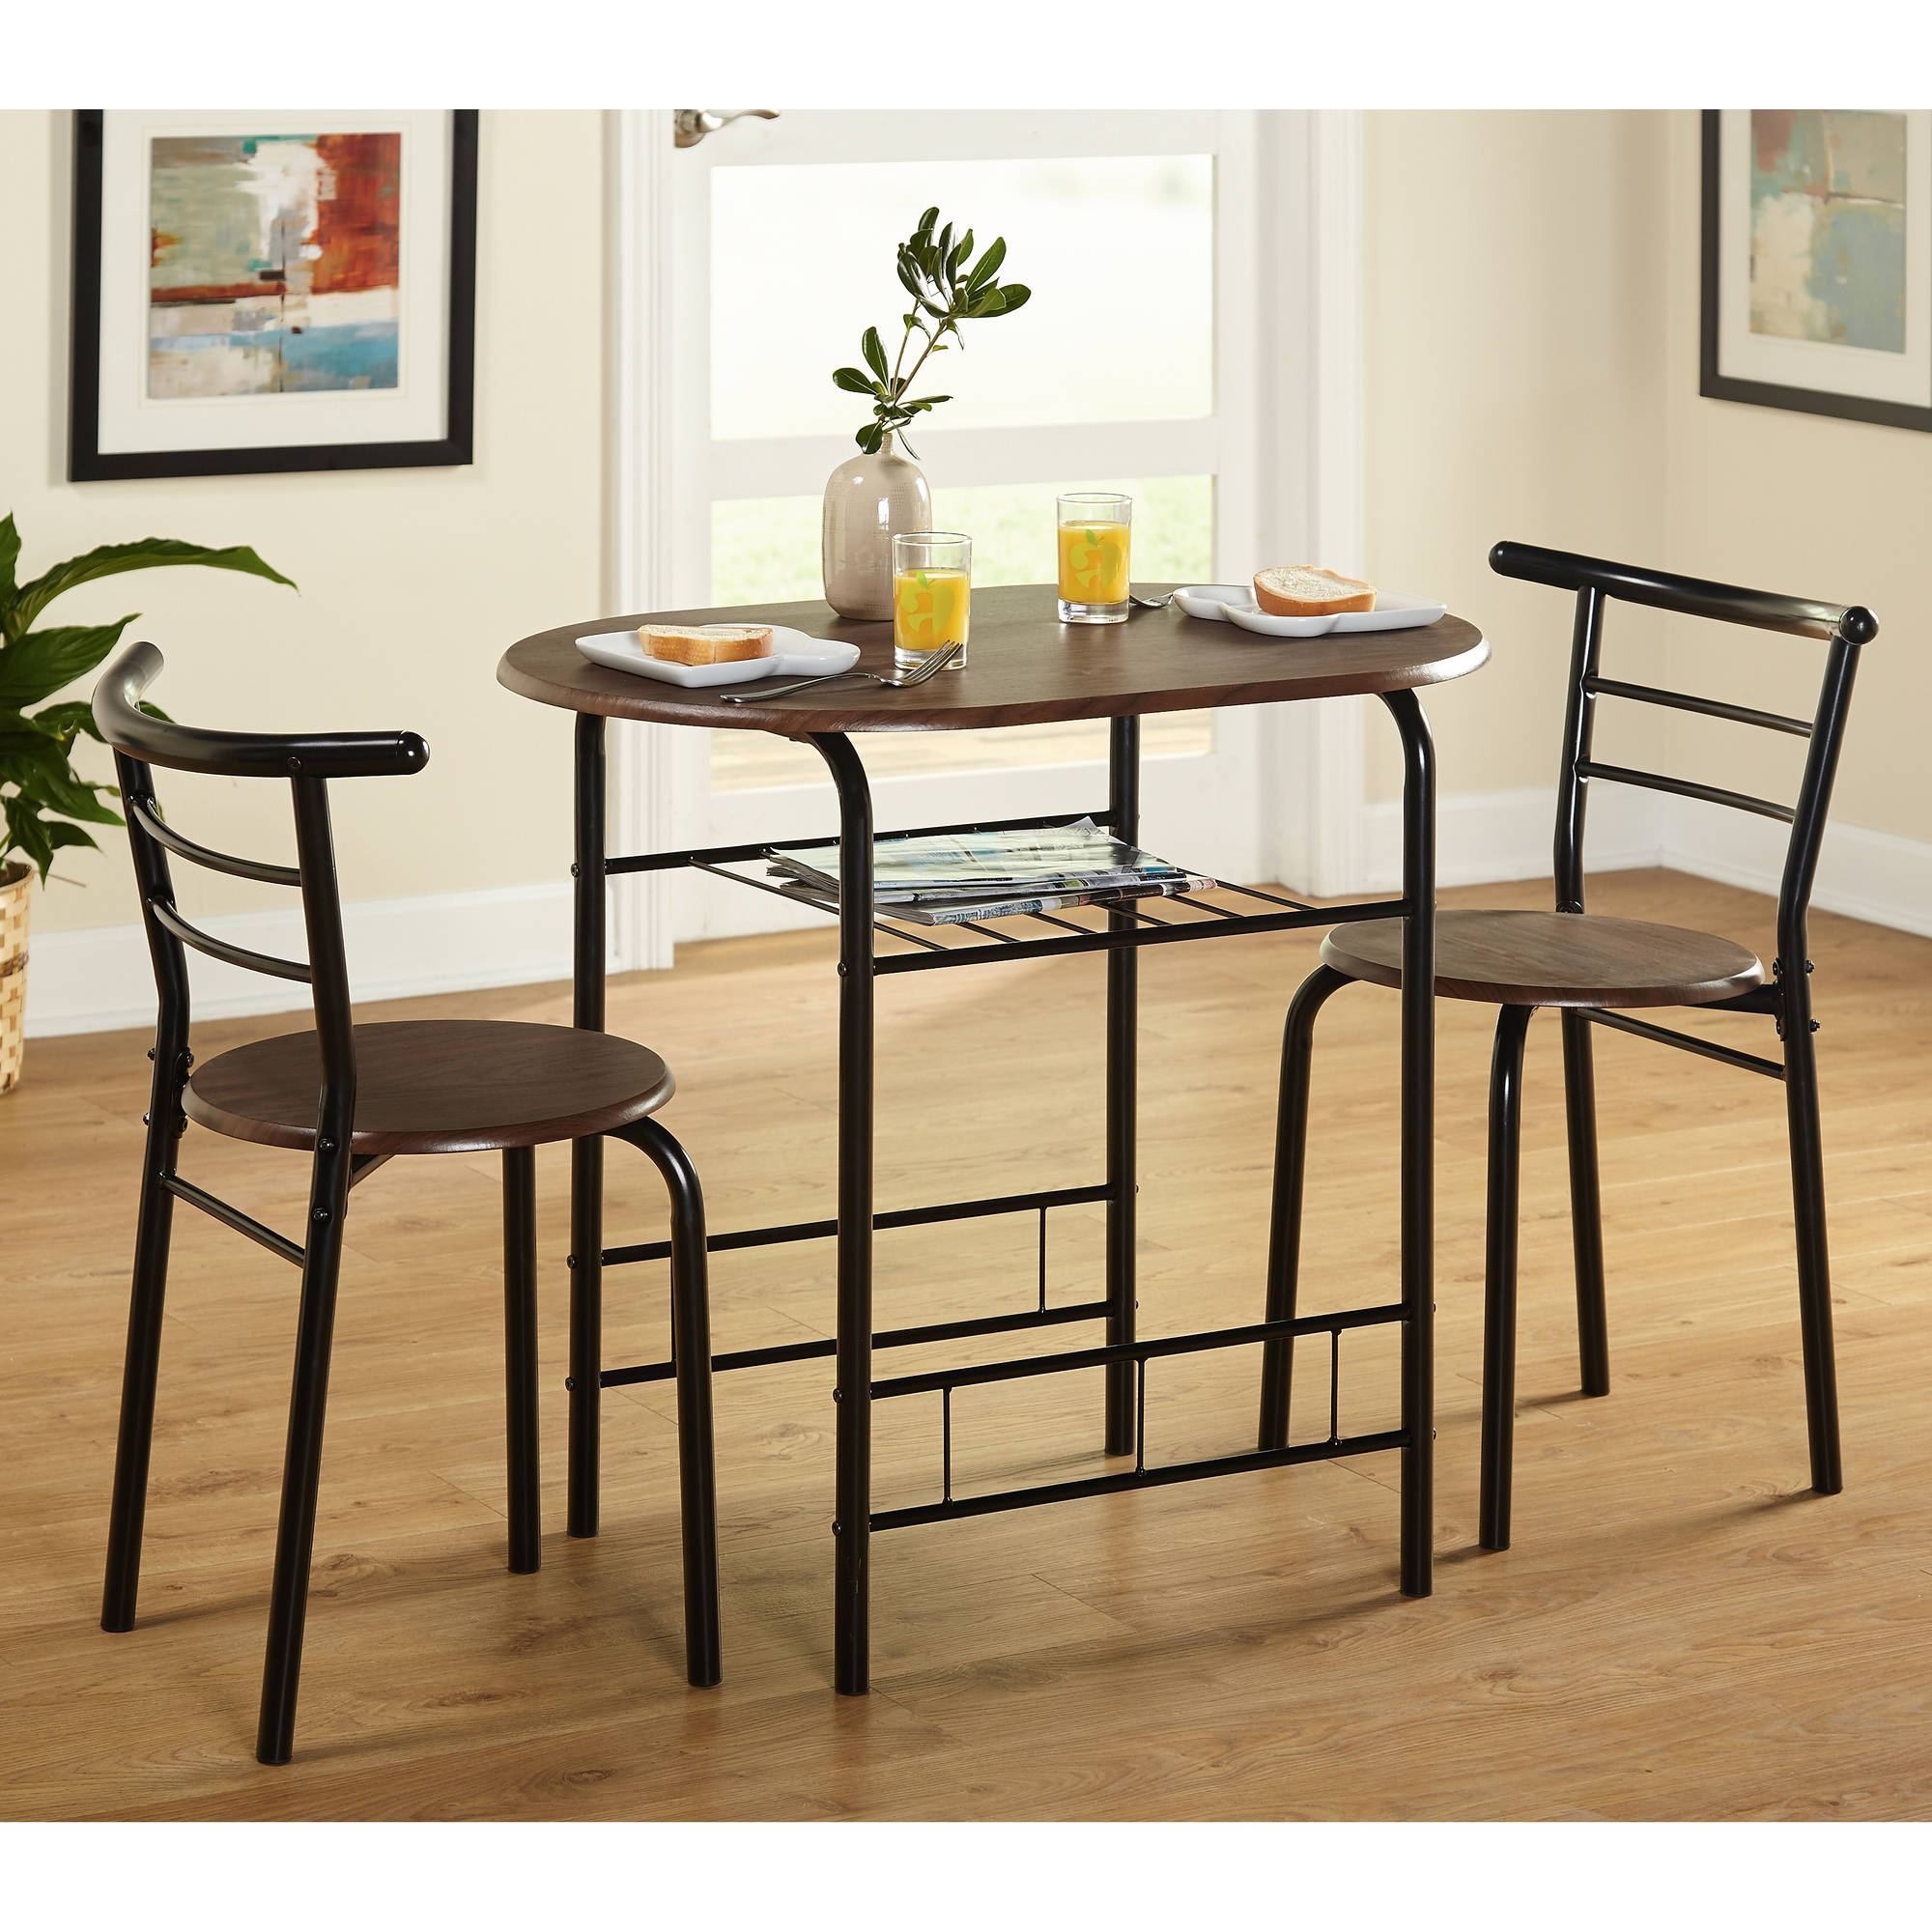 3-piece bistro set, multiple colors - walmart